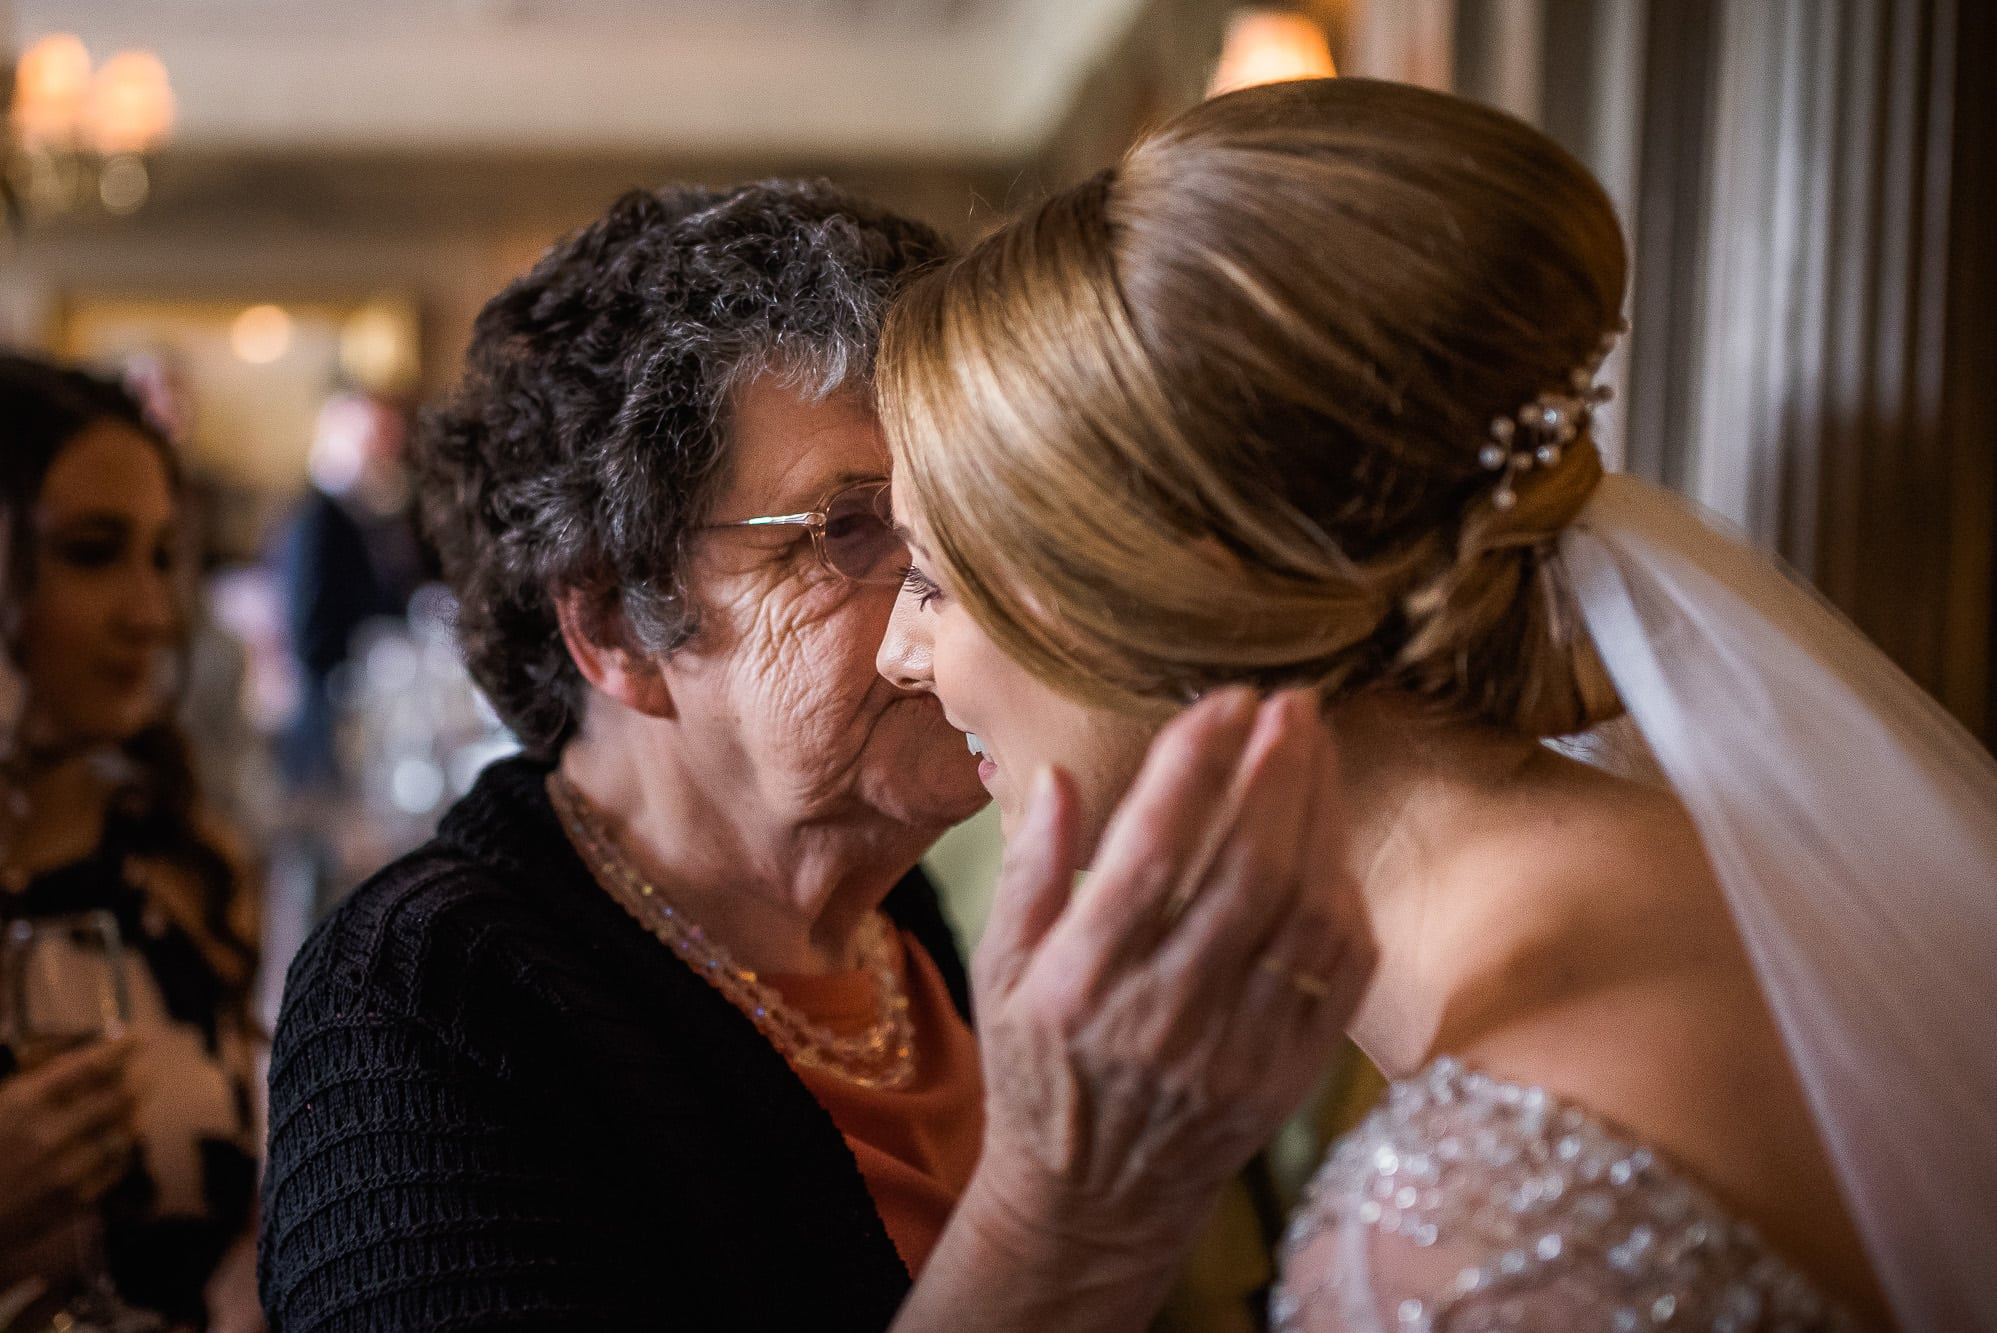 Bride being hugged by guest